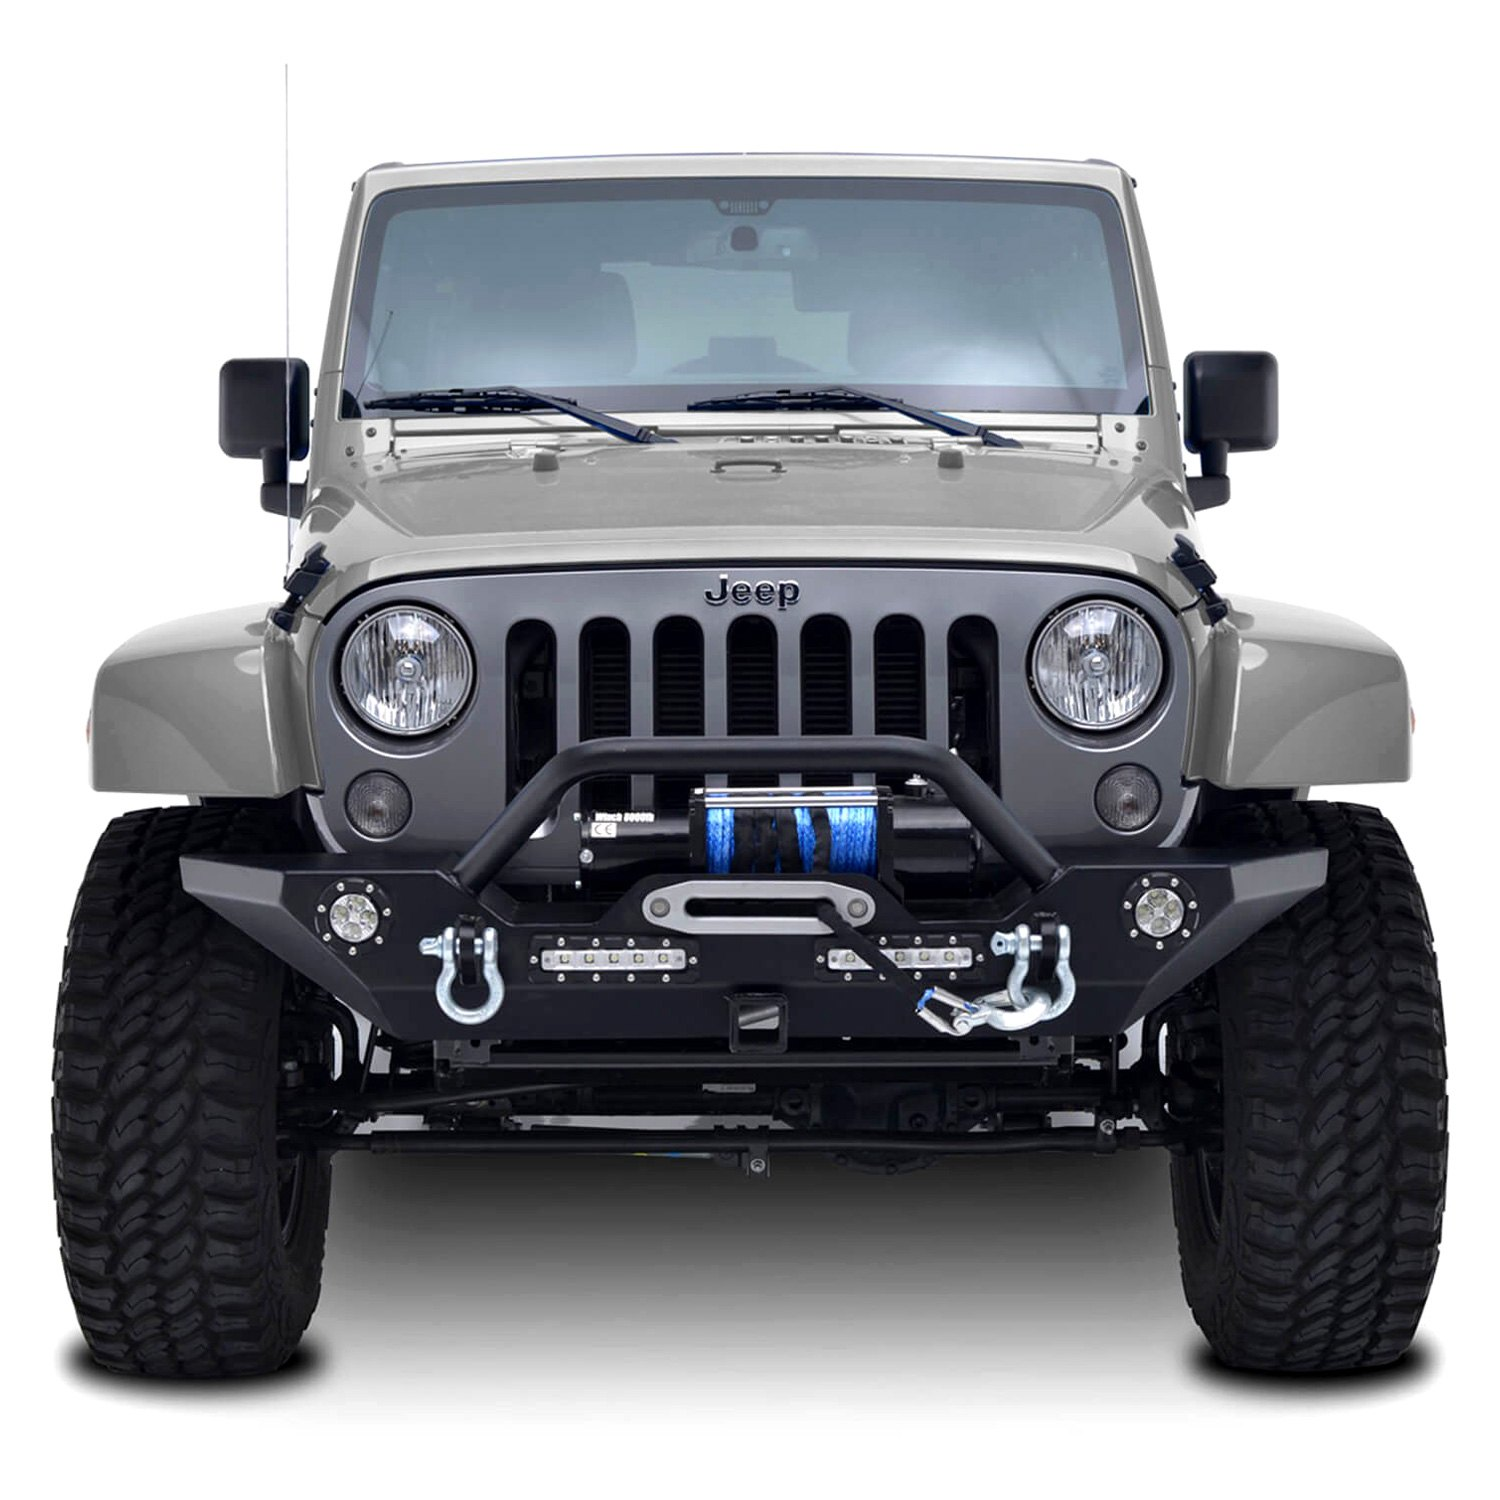 paramount jeep wrangler 2007 off road rock crawler full width black front winch hd bumper. Black Bedroom Furniture Sets. Home Design Ideas